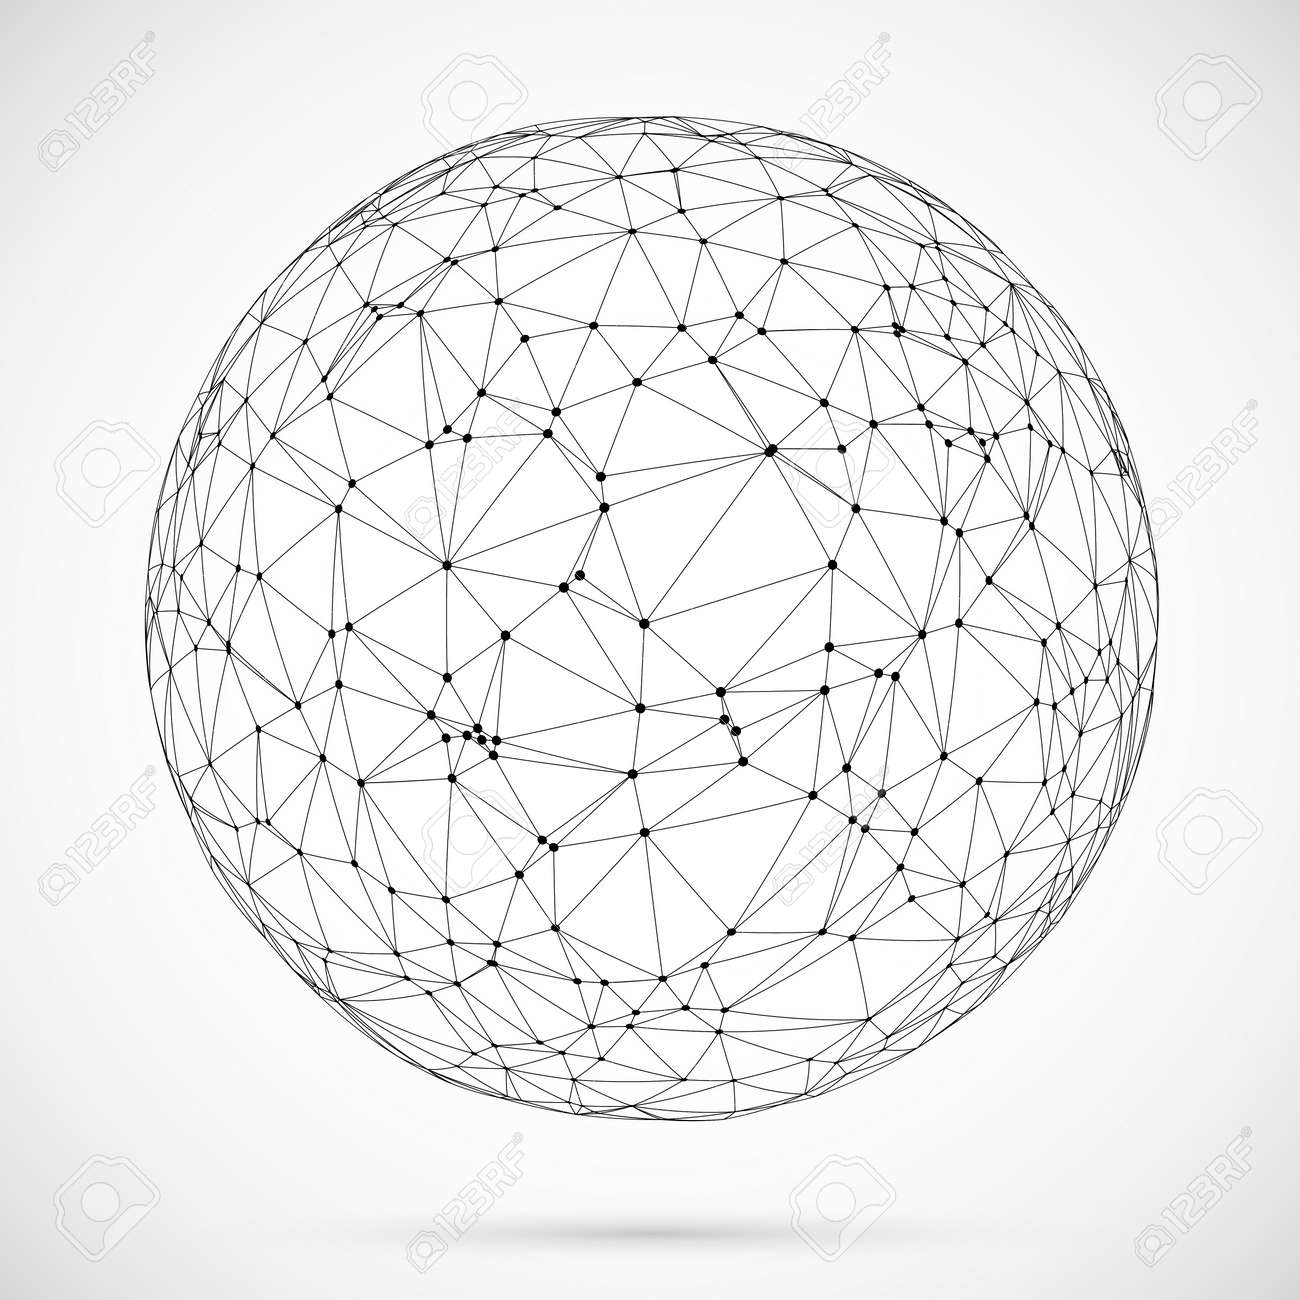 Big data icon. Artificial intelligence. Global network concept. Abstract geometric spherical shape with triangular shapes.Wireframe dotted sphere. - 125974767